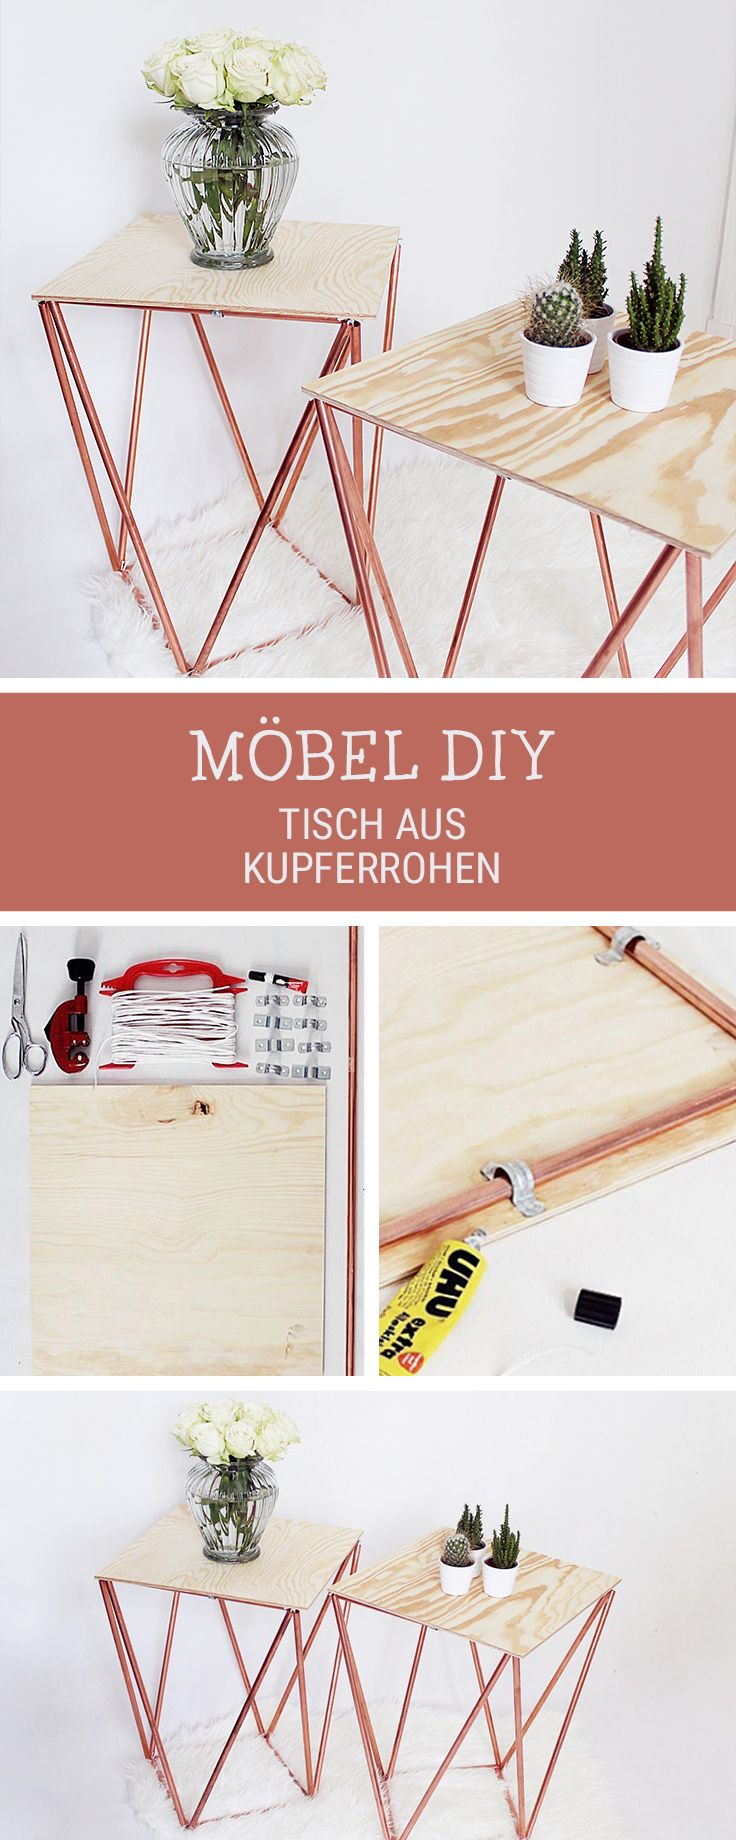 DIY-Anleitung für einen modernen Tisch aus Kupferrohren und Holz, Möbel selberbauen / crafting project: side table made of copper pipes via DaWanda.com